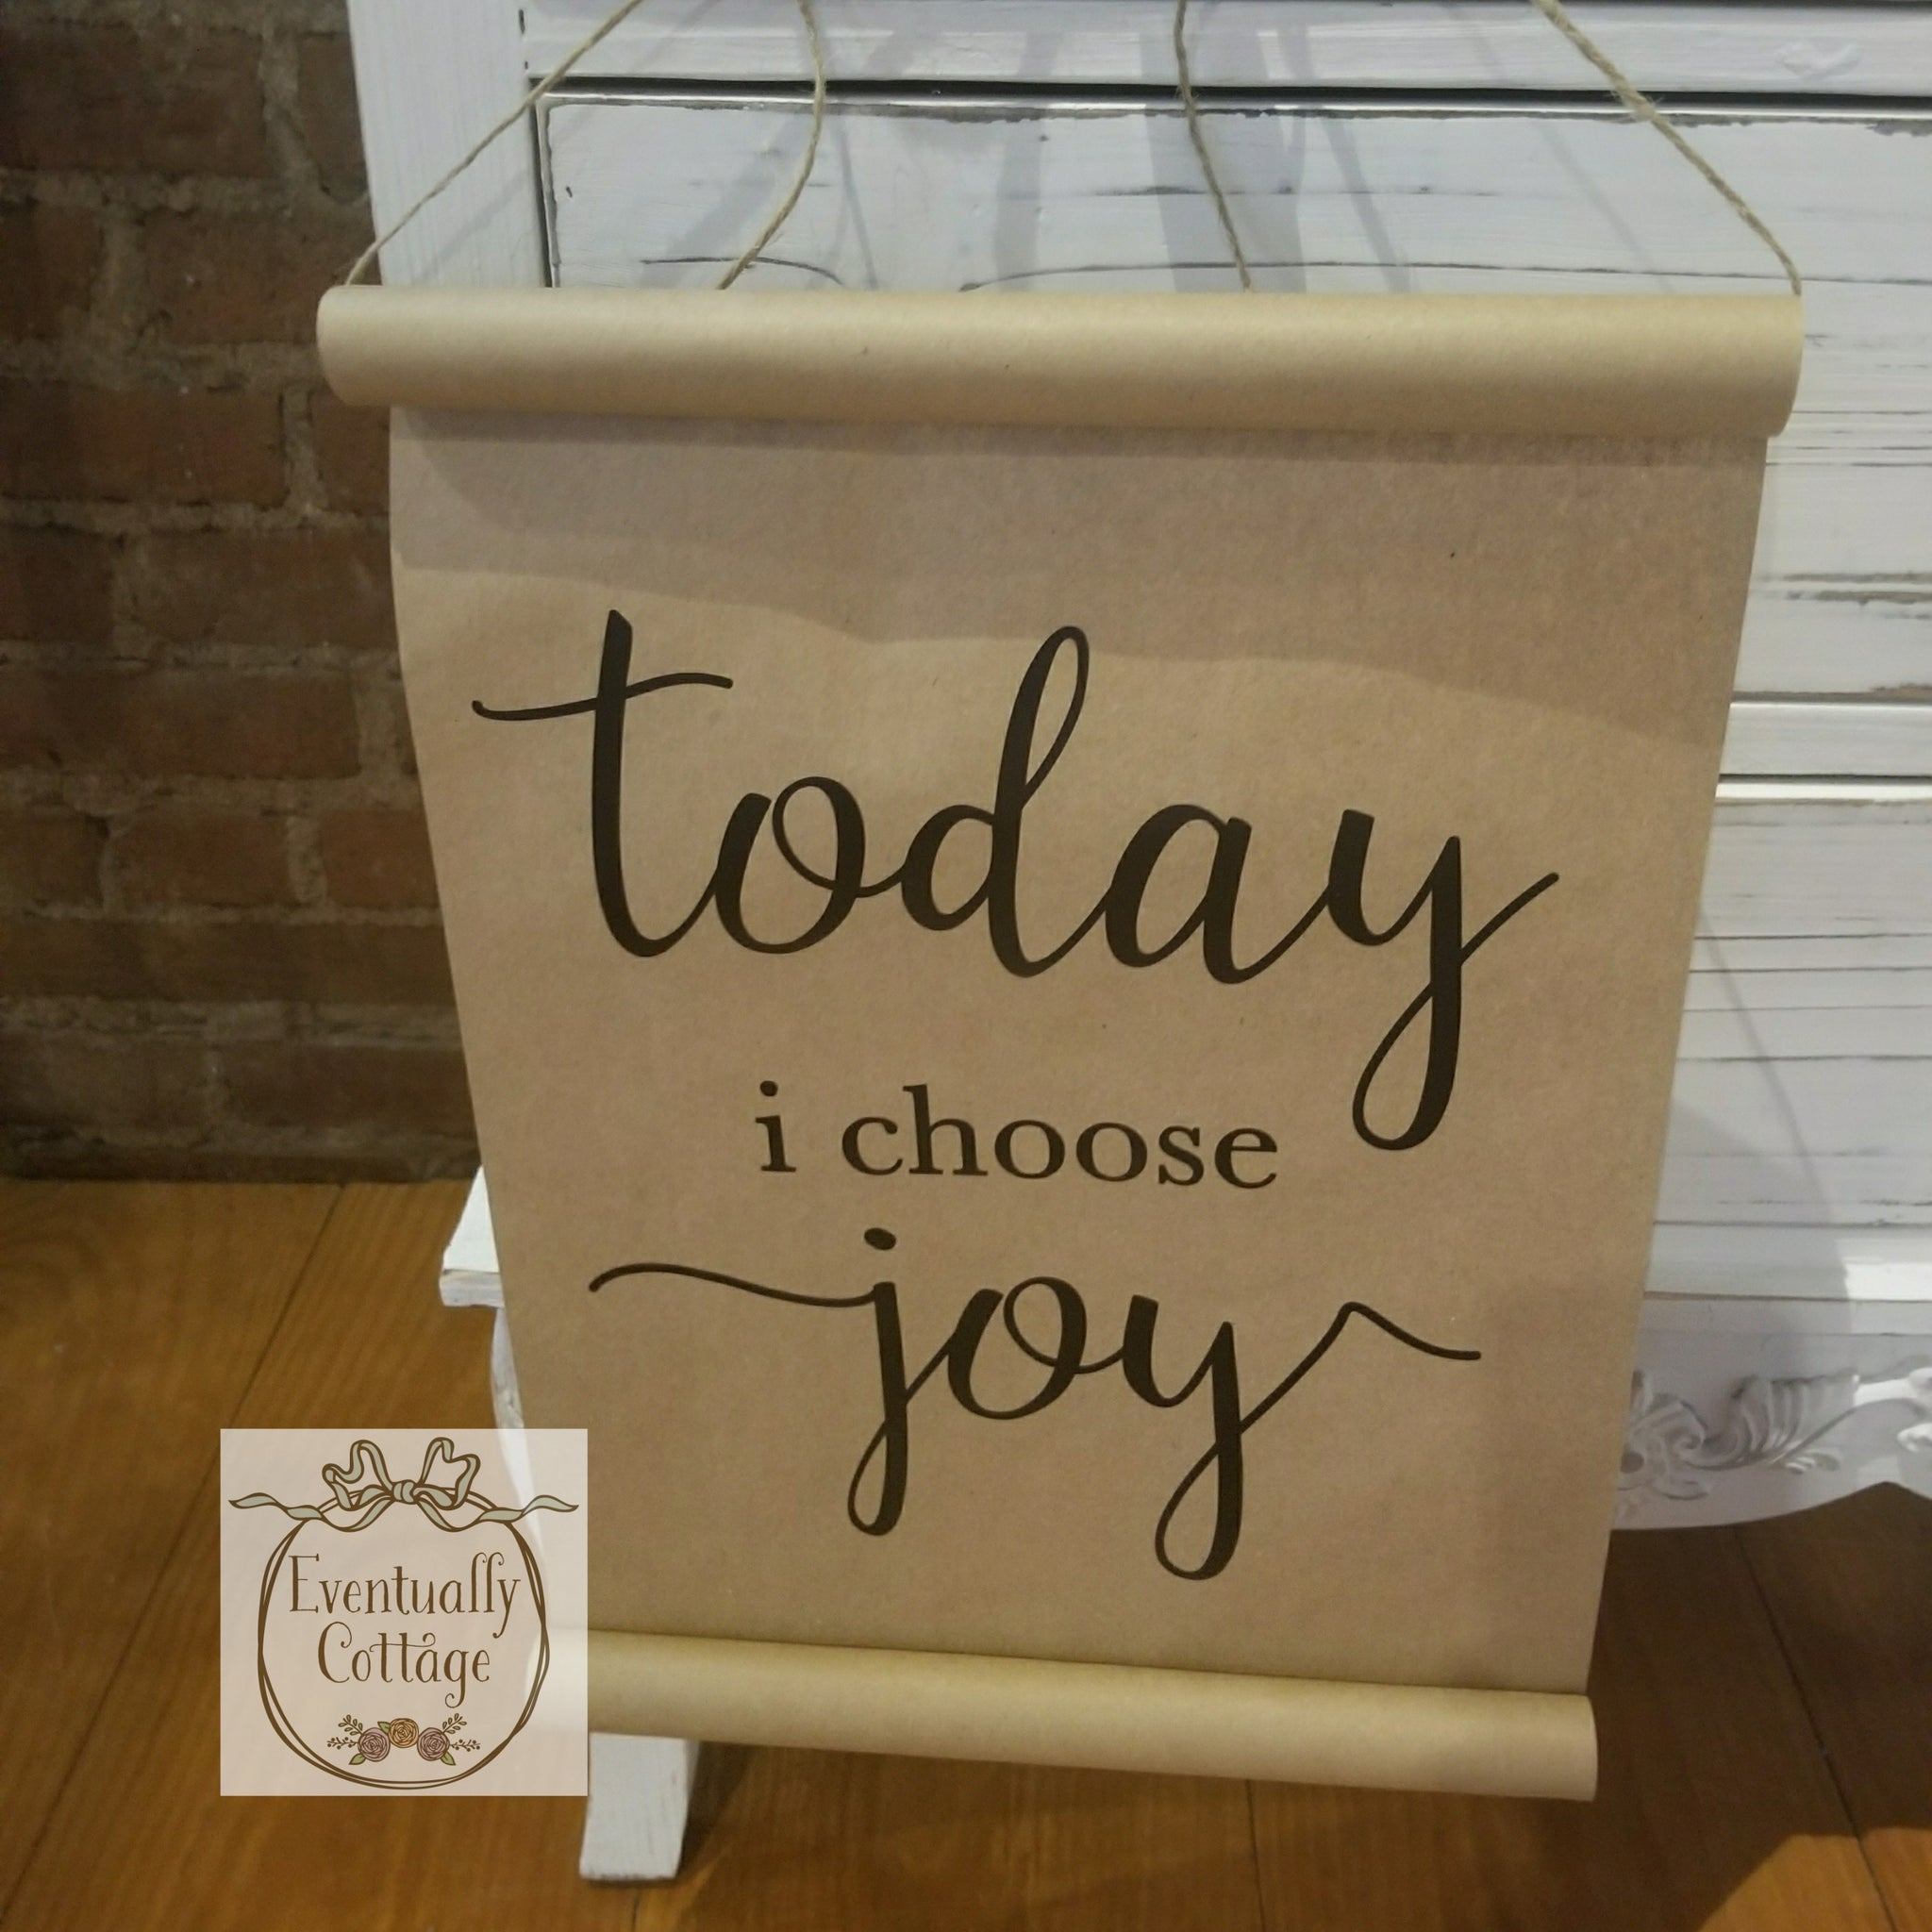 Today I Choose Joy Paper Scroll